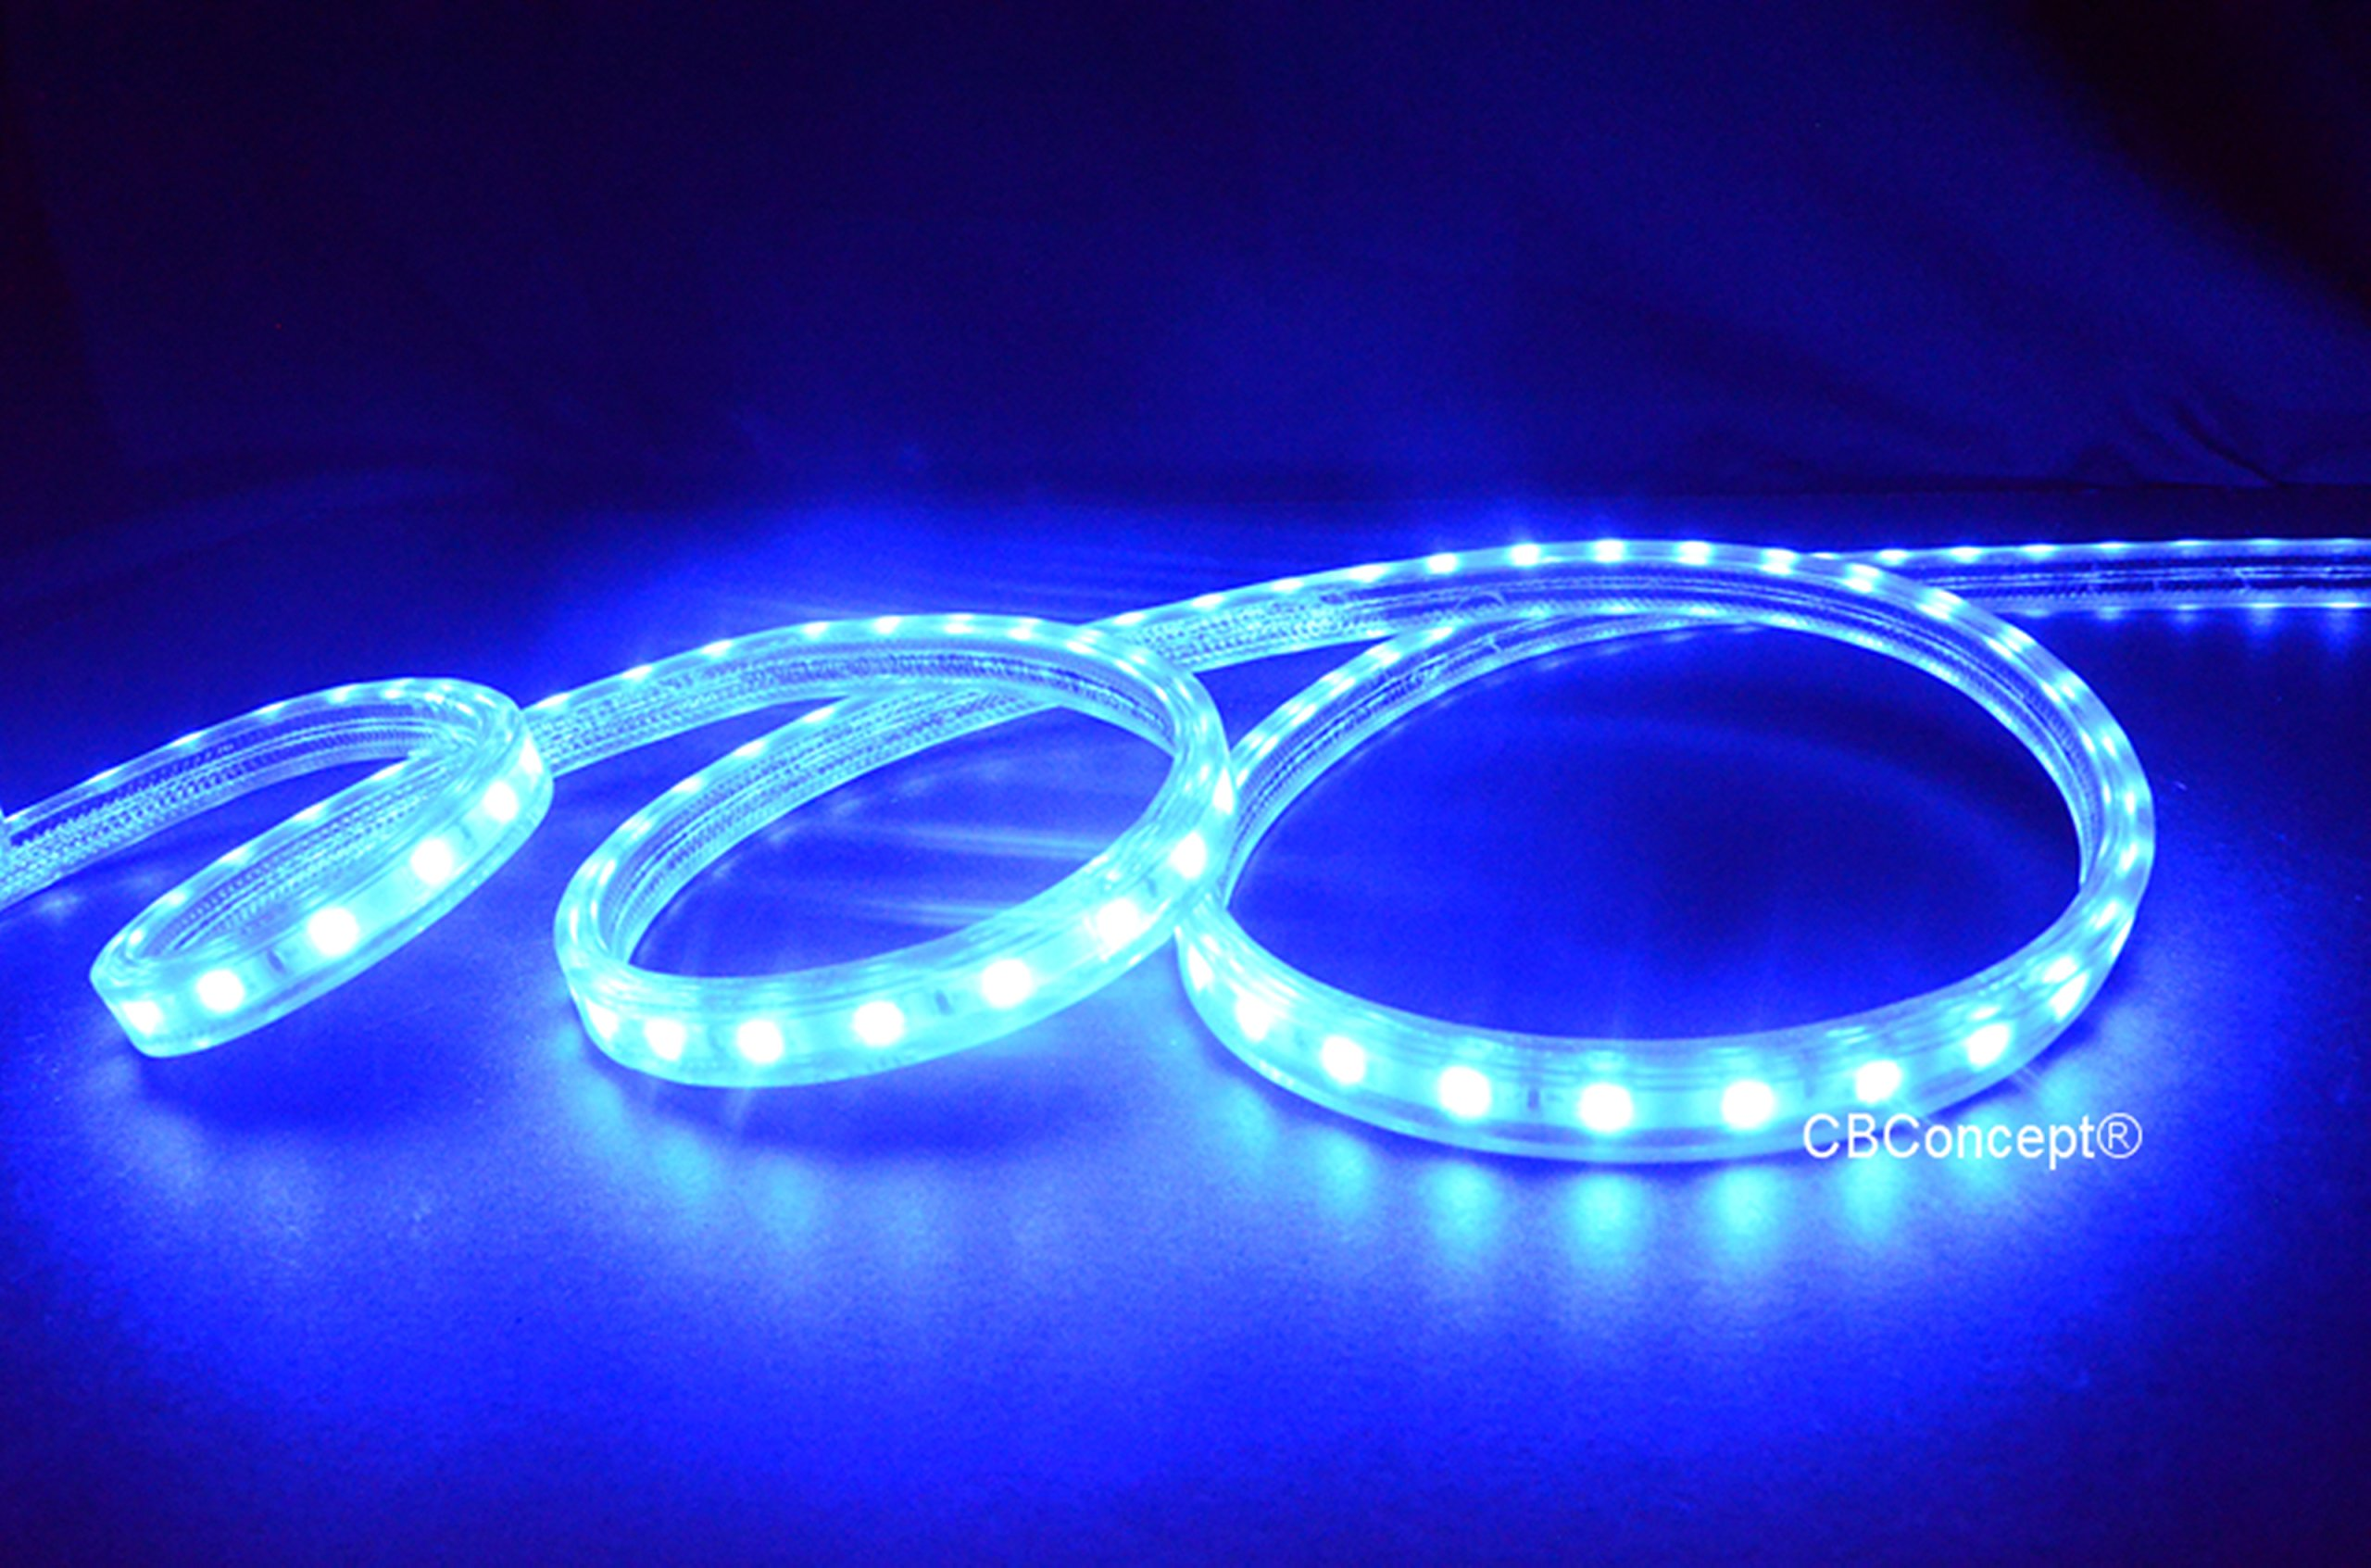 CBConcept UL Listed, 164 Feet,Super Bright 45000 Lumen, Blue, Dimmable, 110-120V AC Flexible Flat LED Strip Rope Light, 3000 Units 5050 SMD LEDs, Indoor/Outdoor Use, [Ready to use]